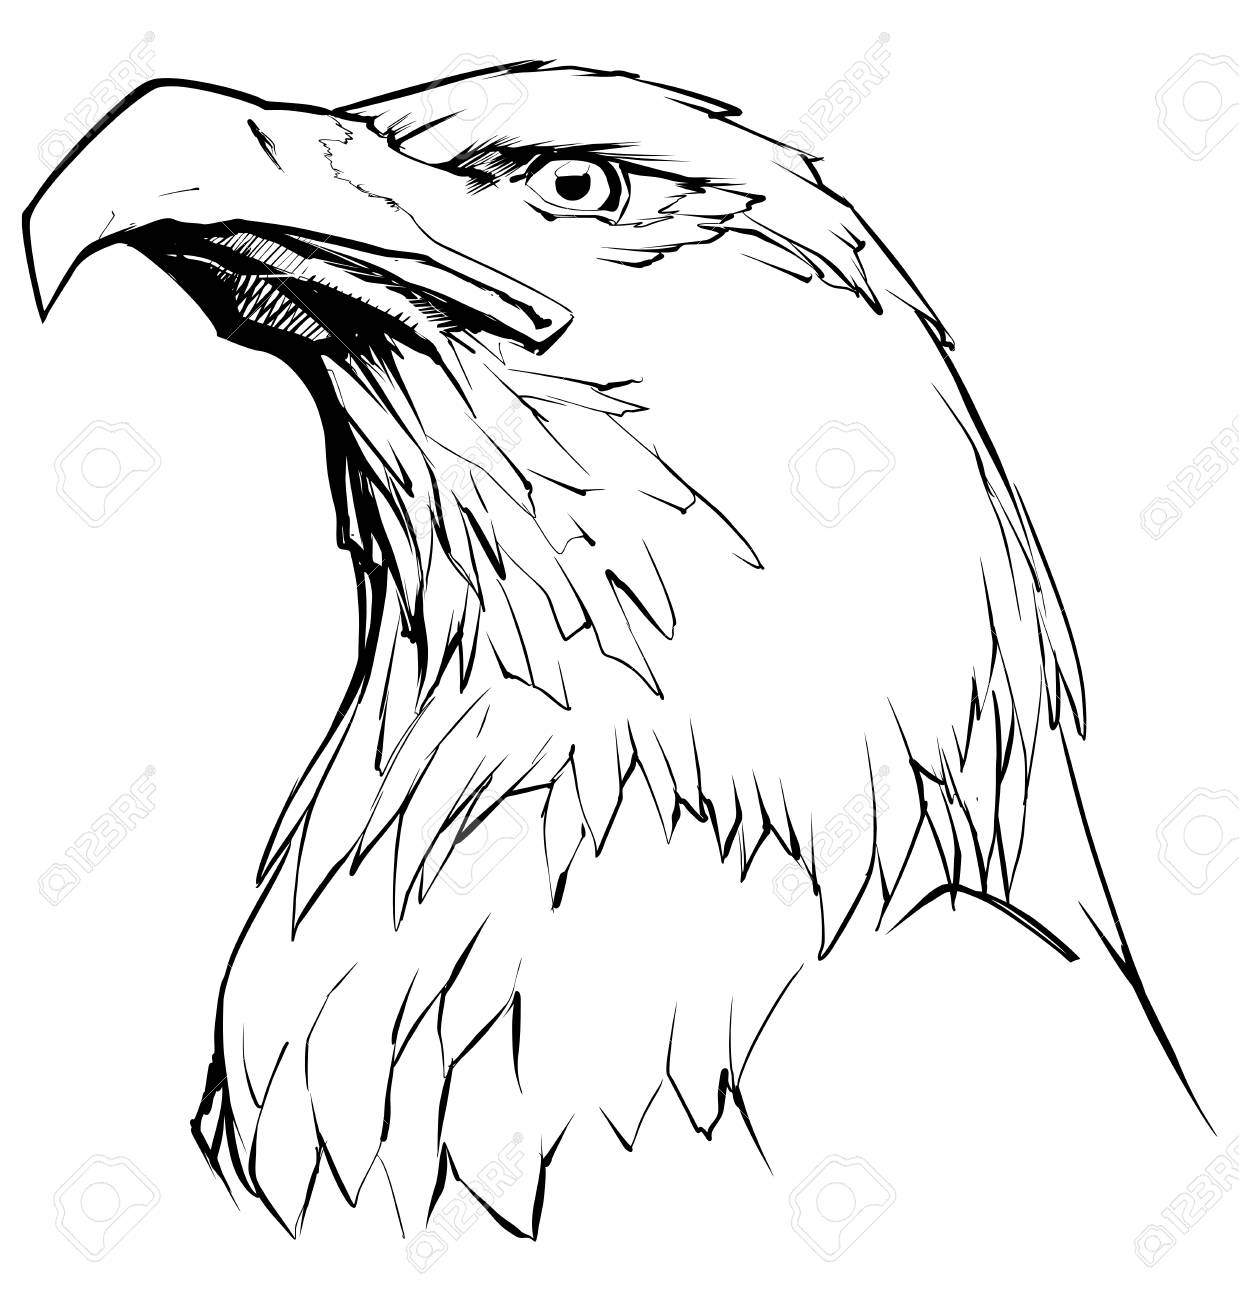 Illustration of north american bald eagle in black and white stock vector 105719181